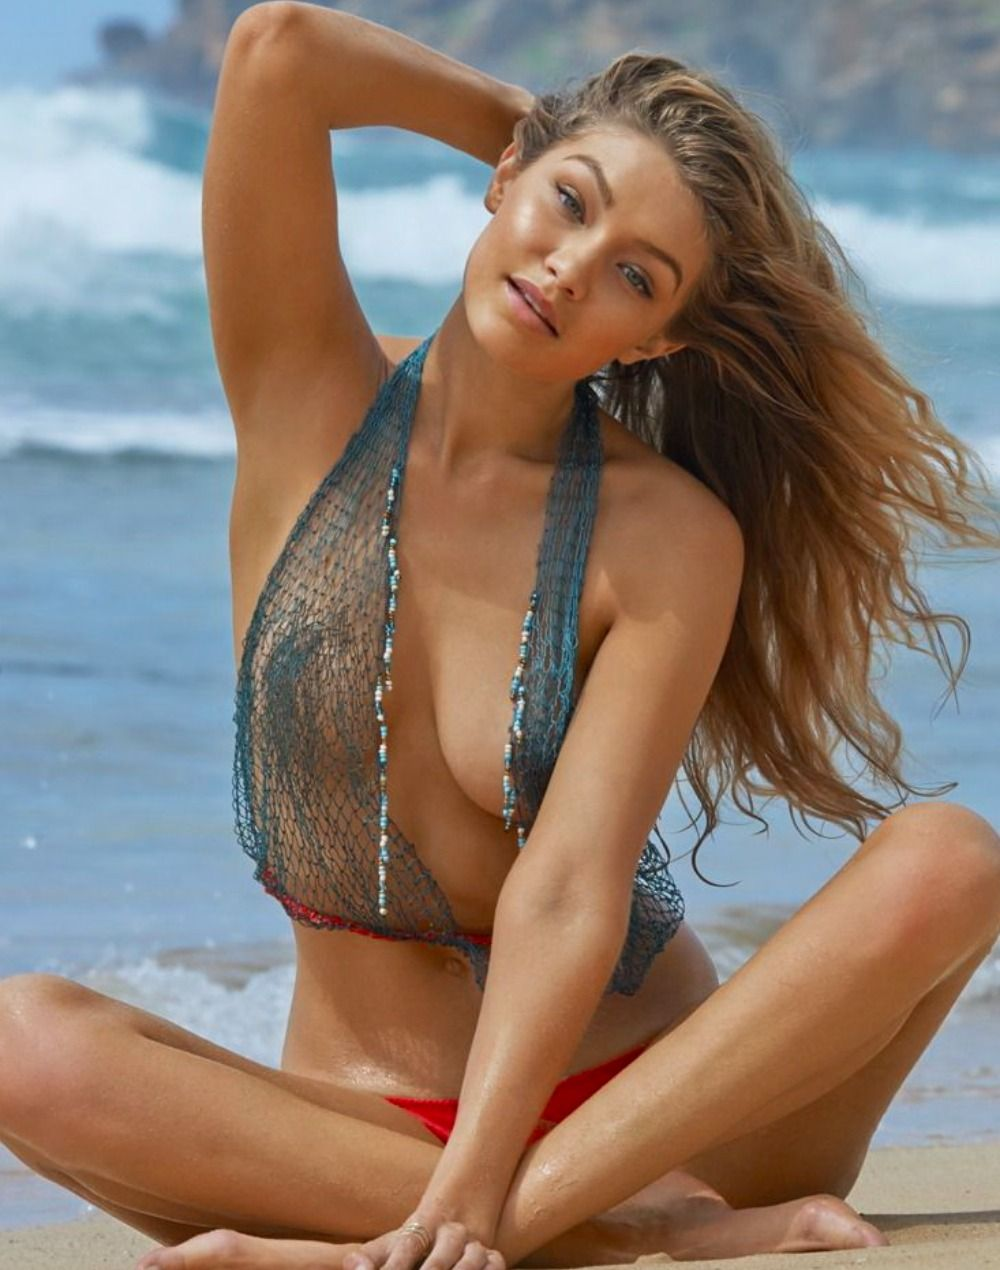 Gentle sports illustrated swimsuit models naked bouncing